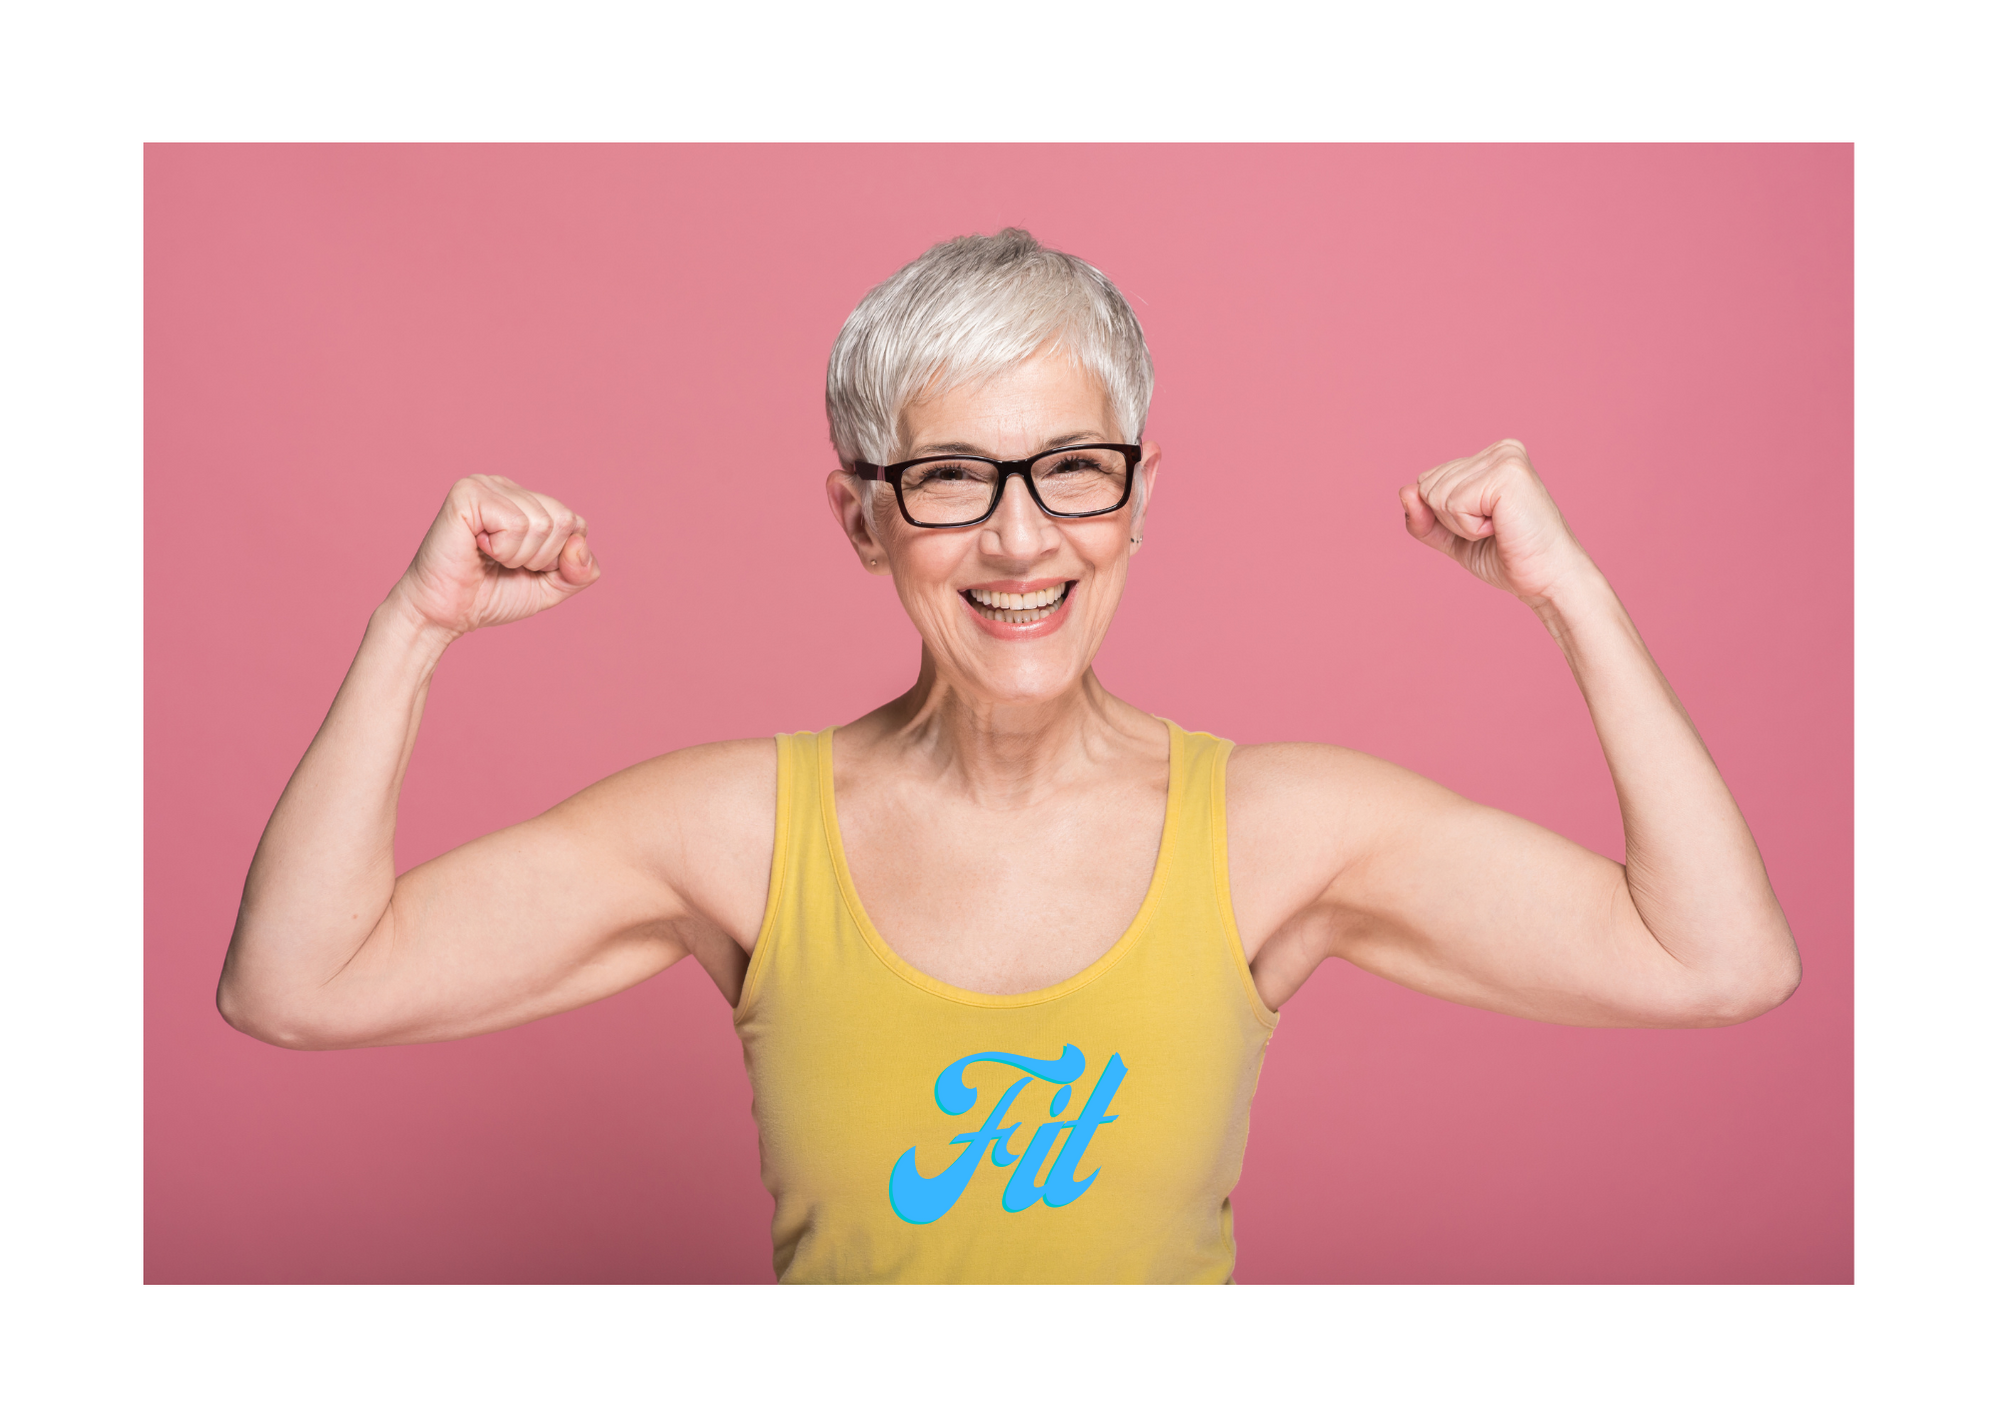 Nourishing Diet During Menopause and Beyond